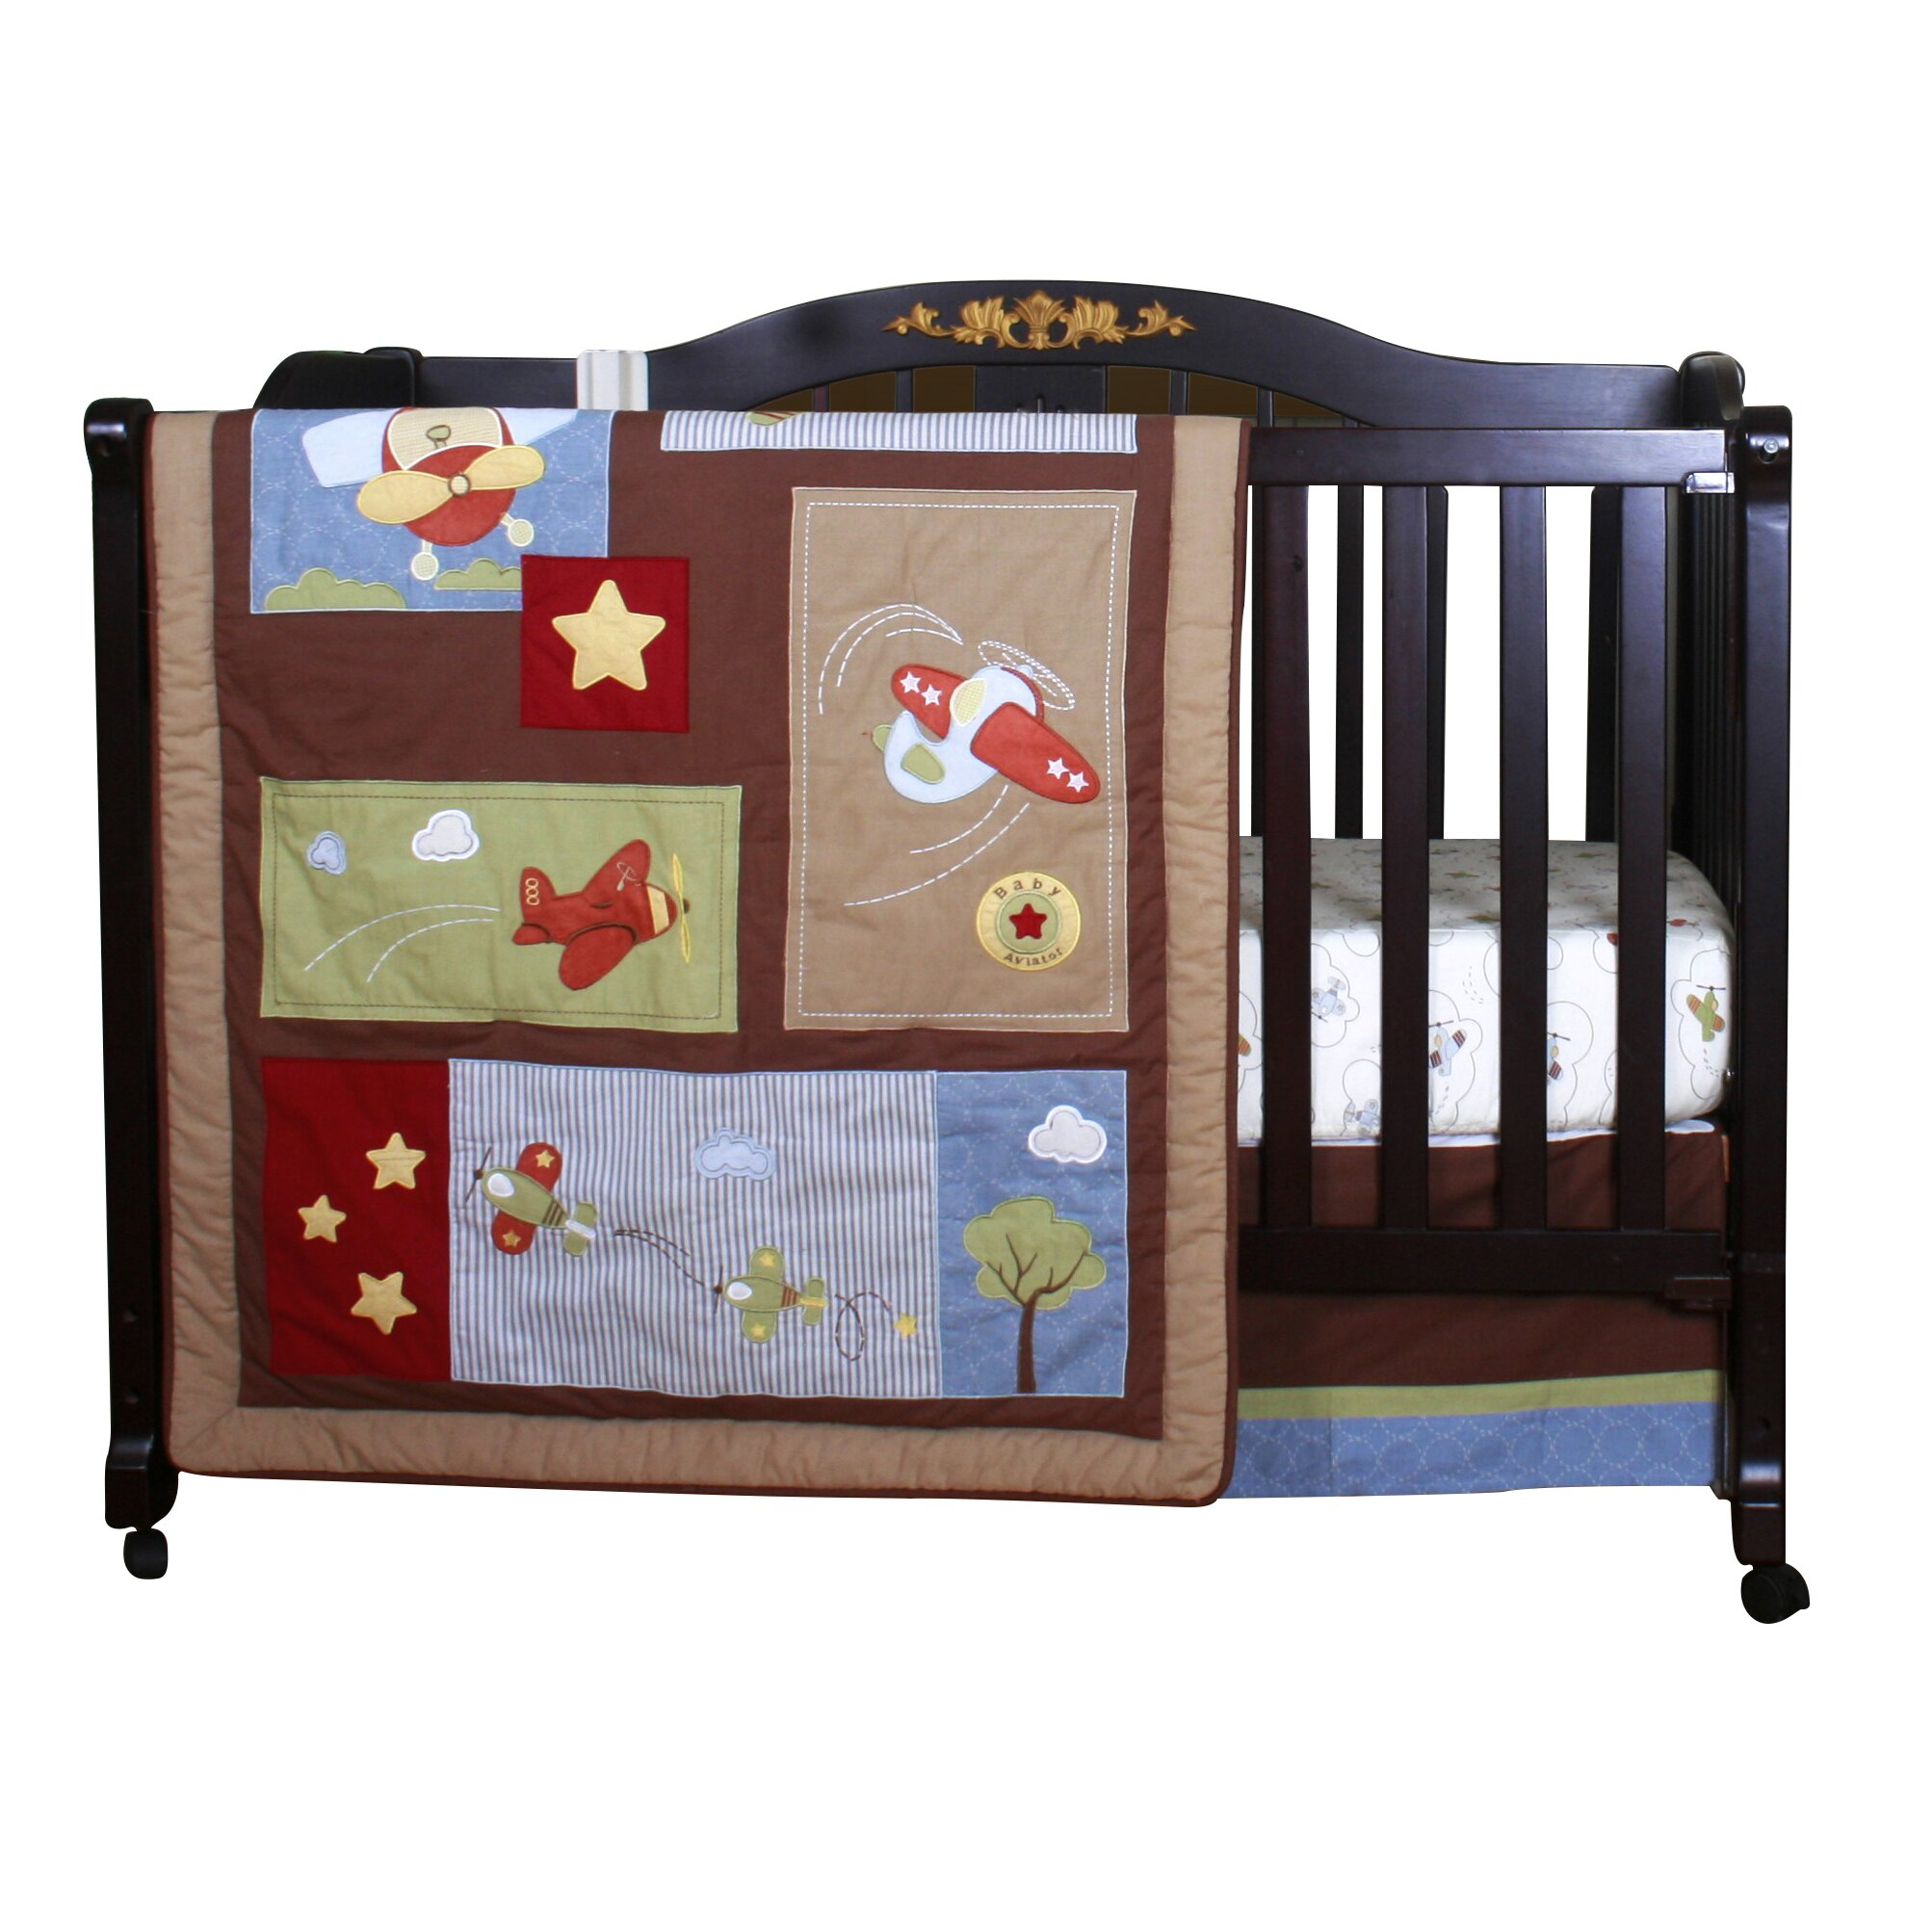 Aviator crib bedding 28 images sweet jojo designs aviator 9 piece crib bedding set aviator - Airplane baby bedding sets ...